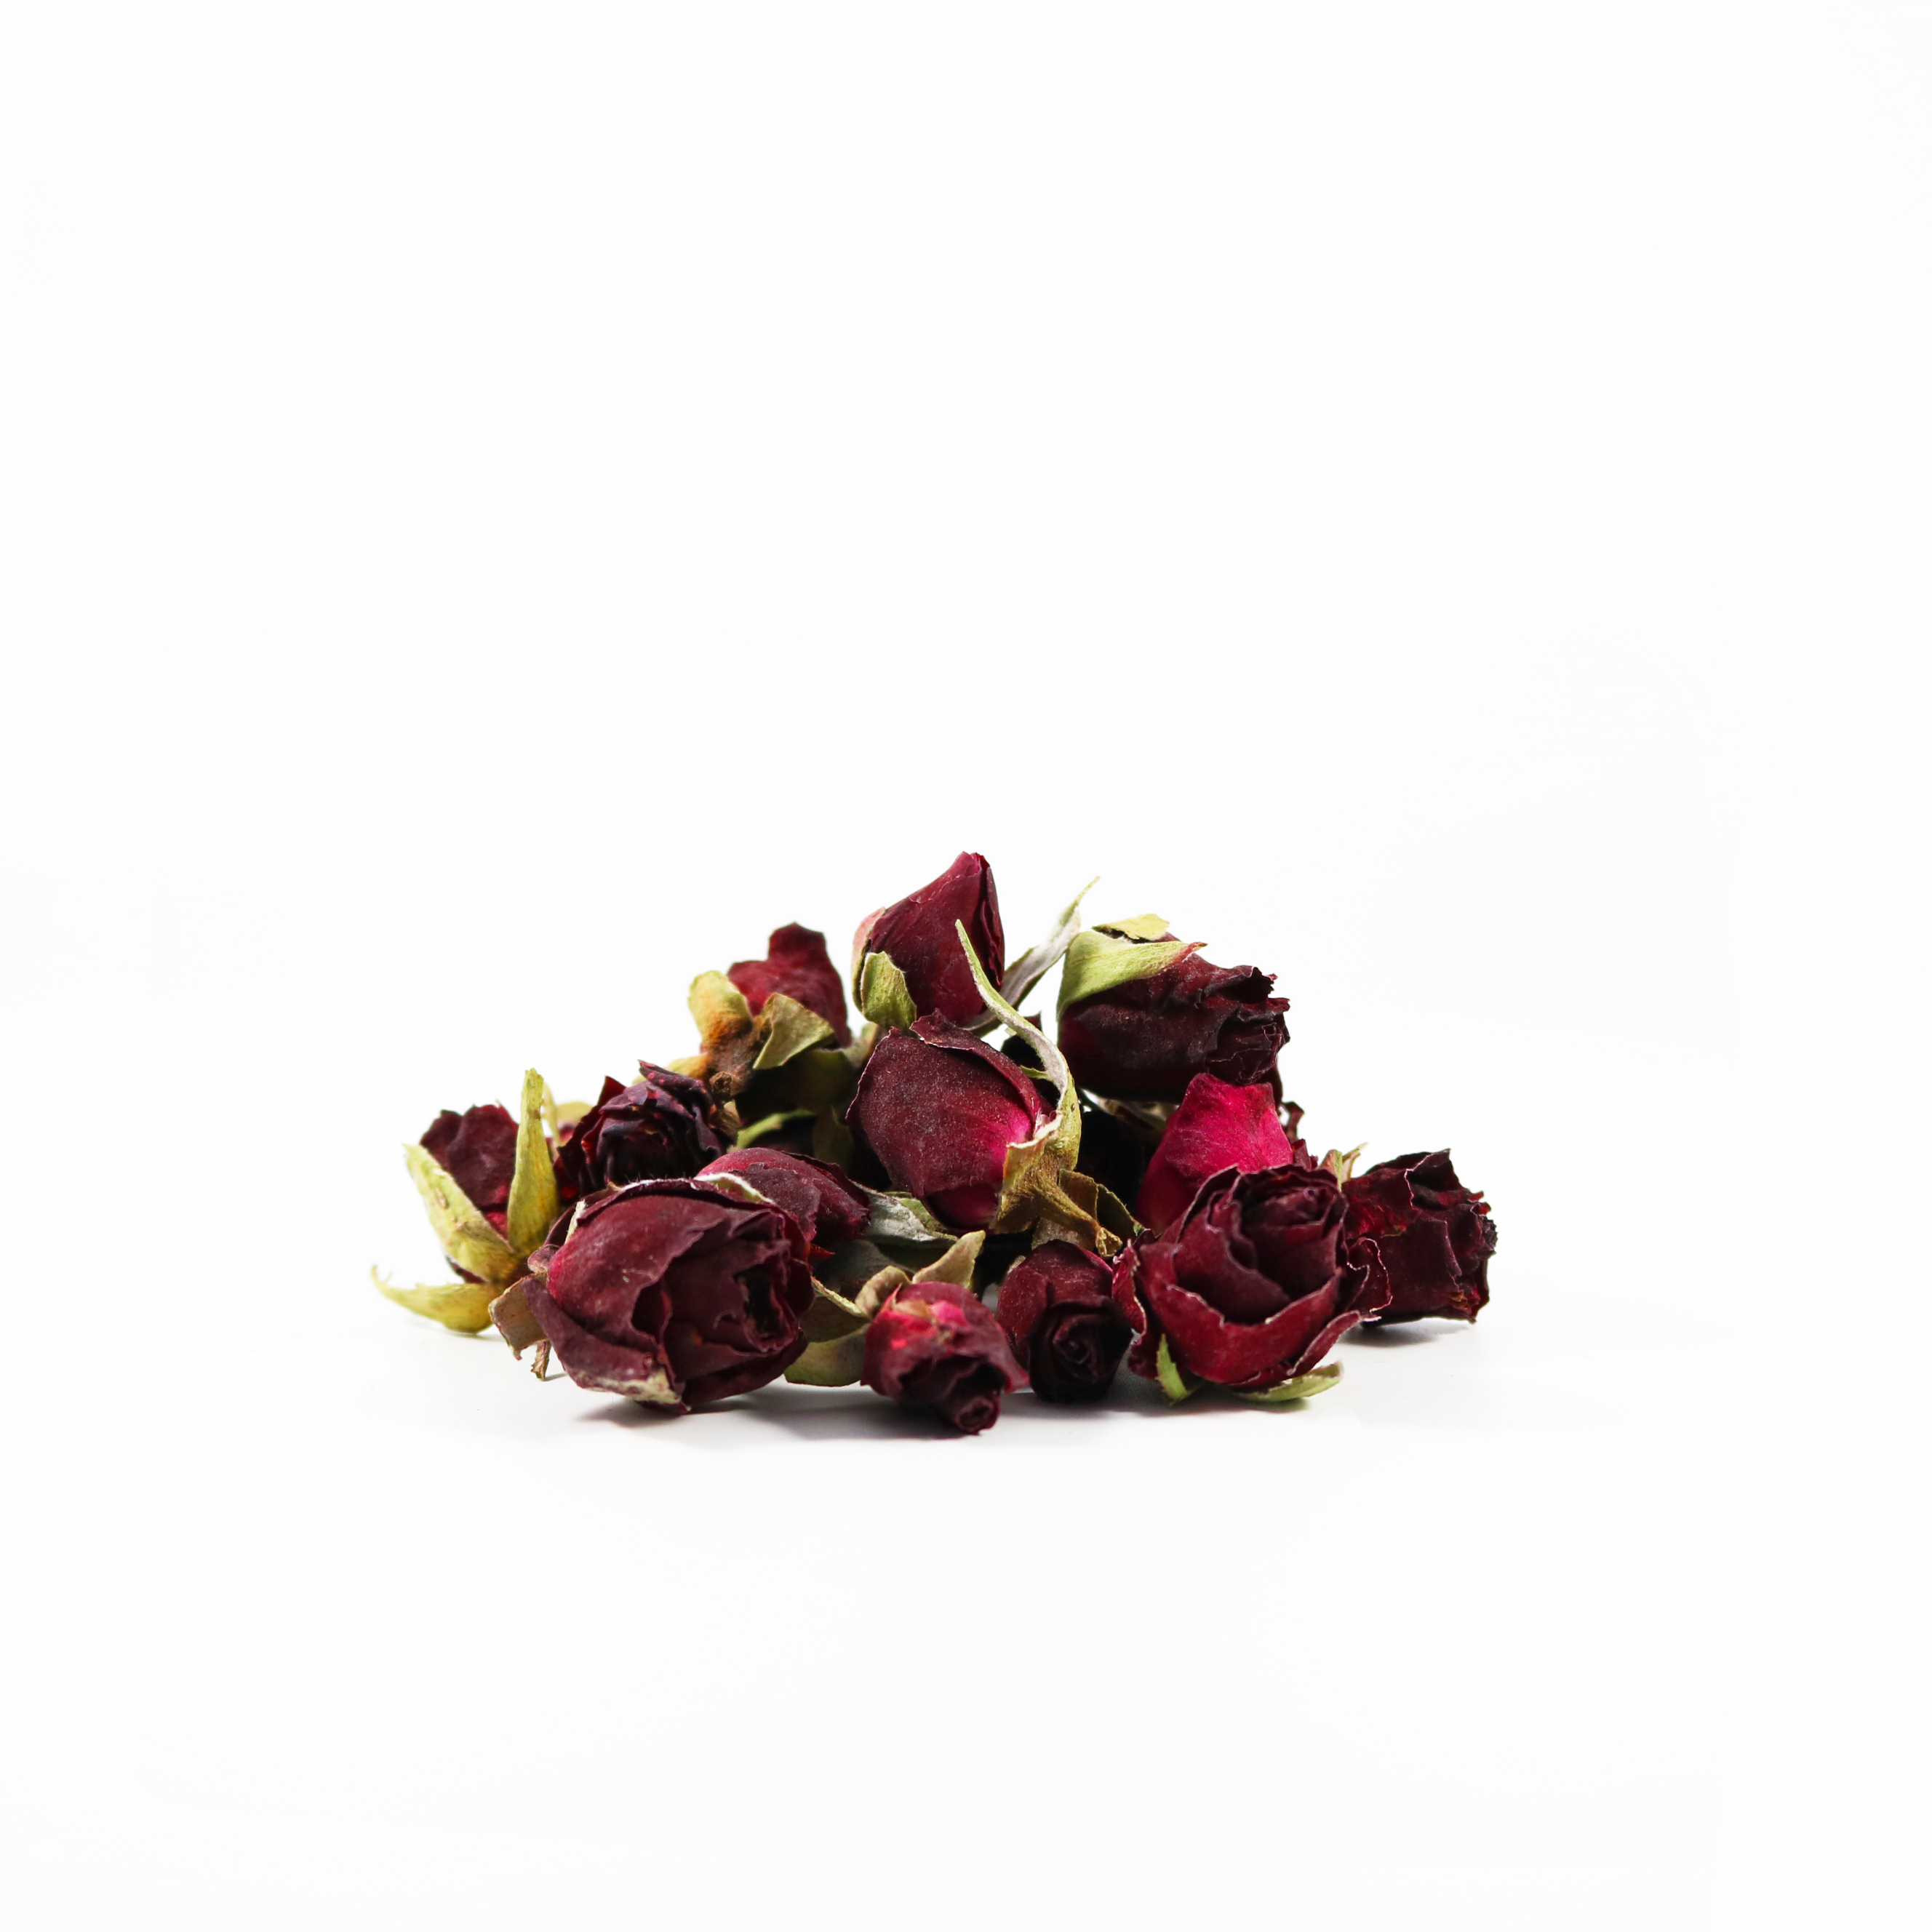 Persian red rose buds